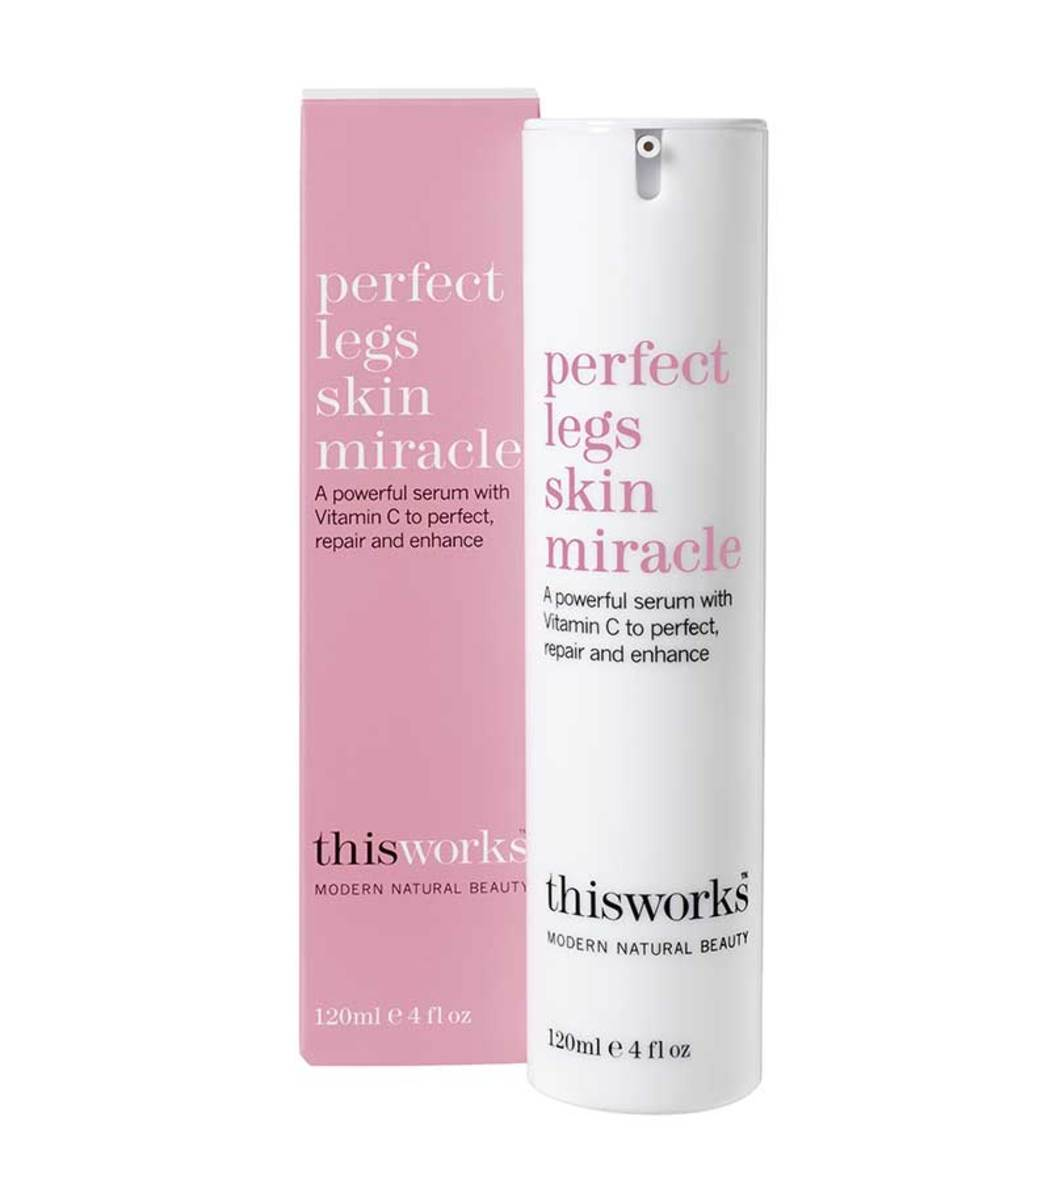 THIS WORKS Perfect Legs Skin Miracle  4oz